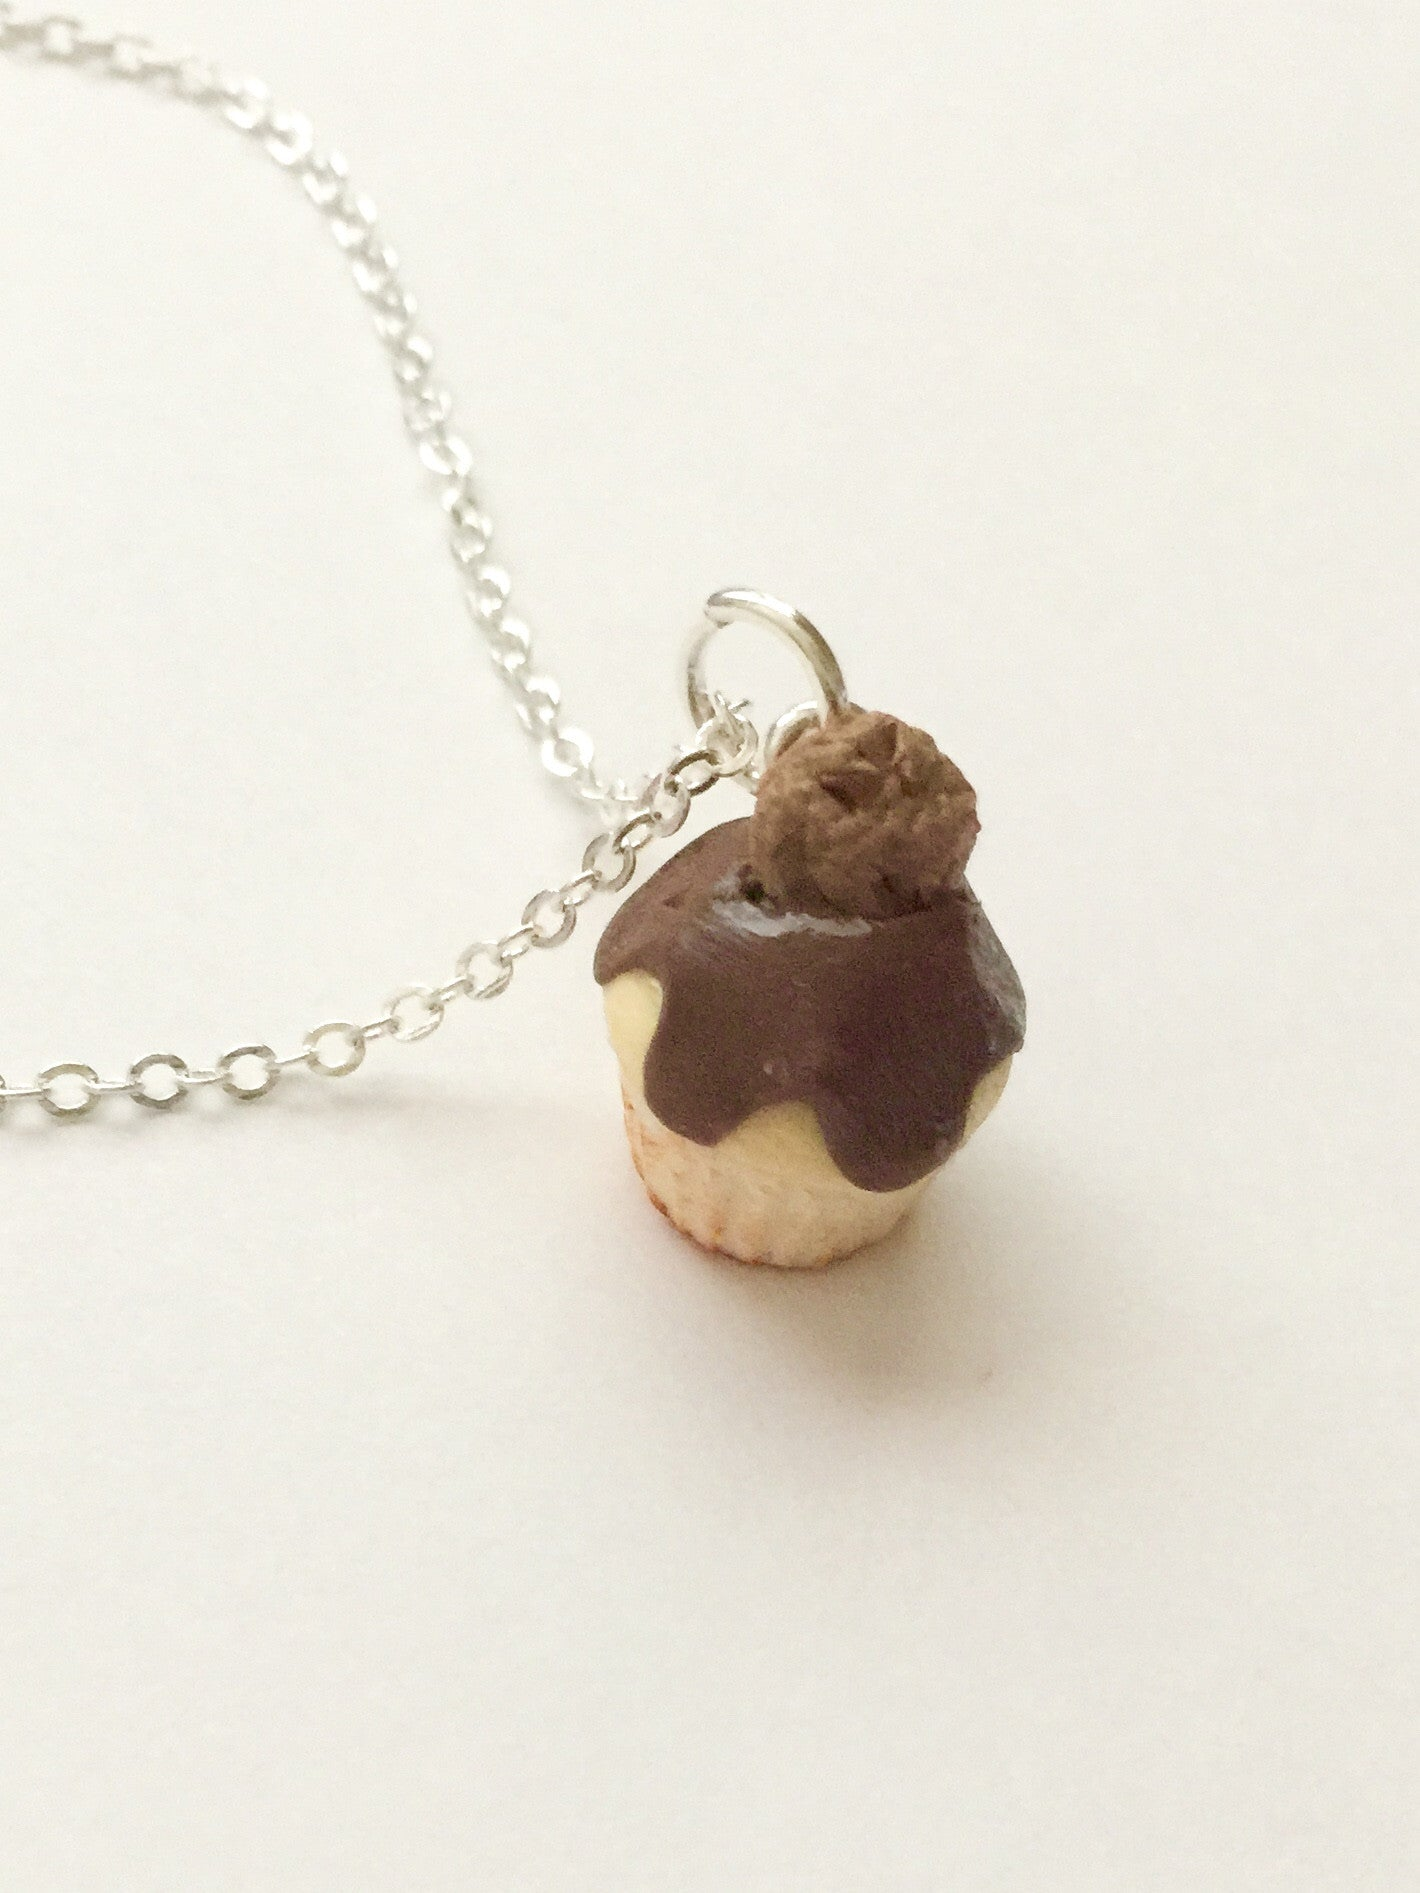 chocolate  chip cookie cupcake necklace - Jillicious charms and accessories